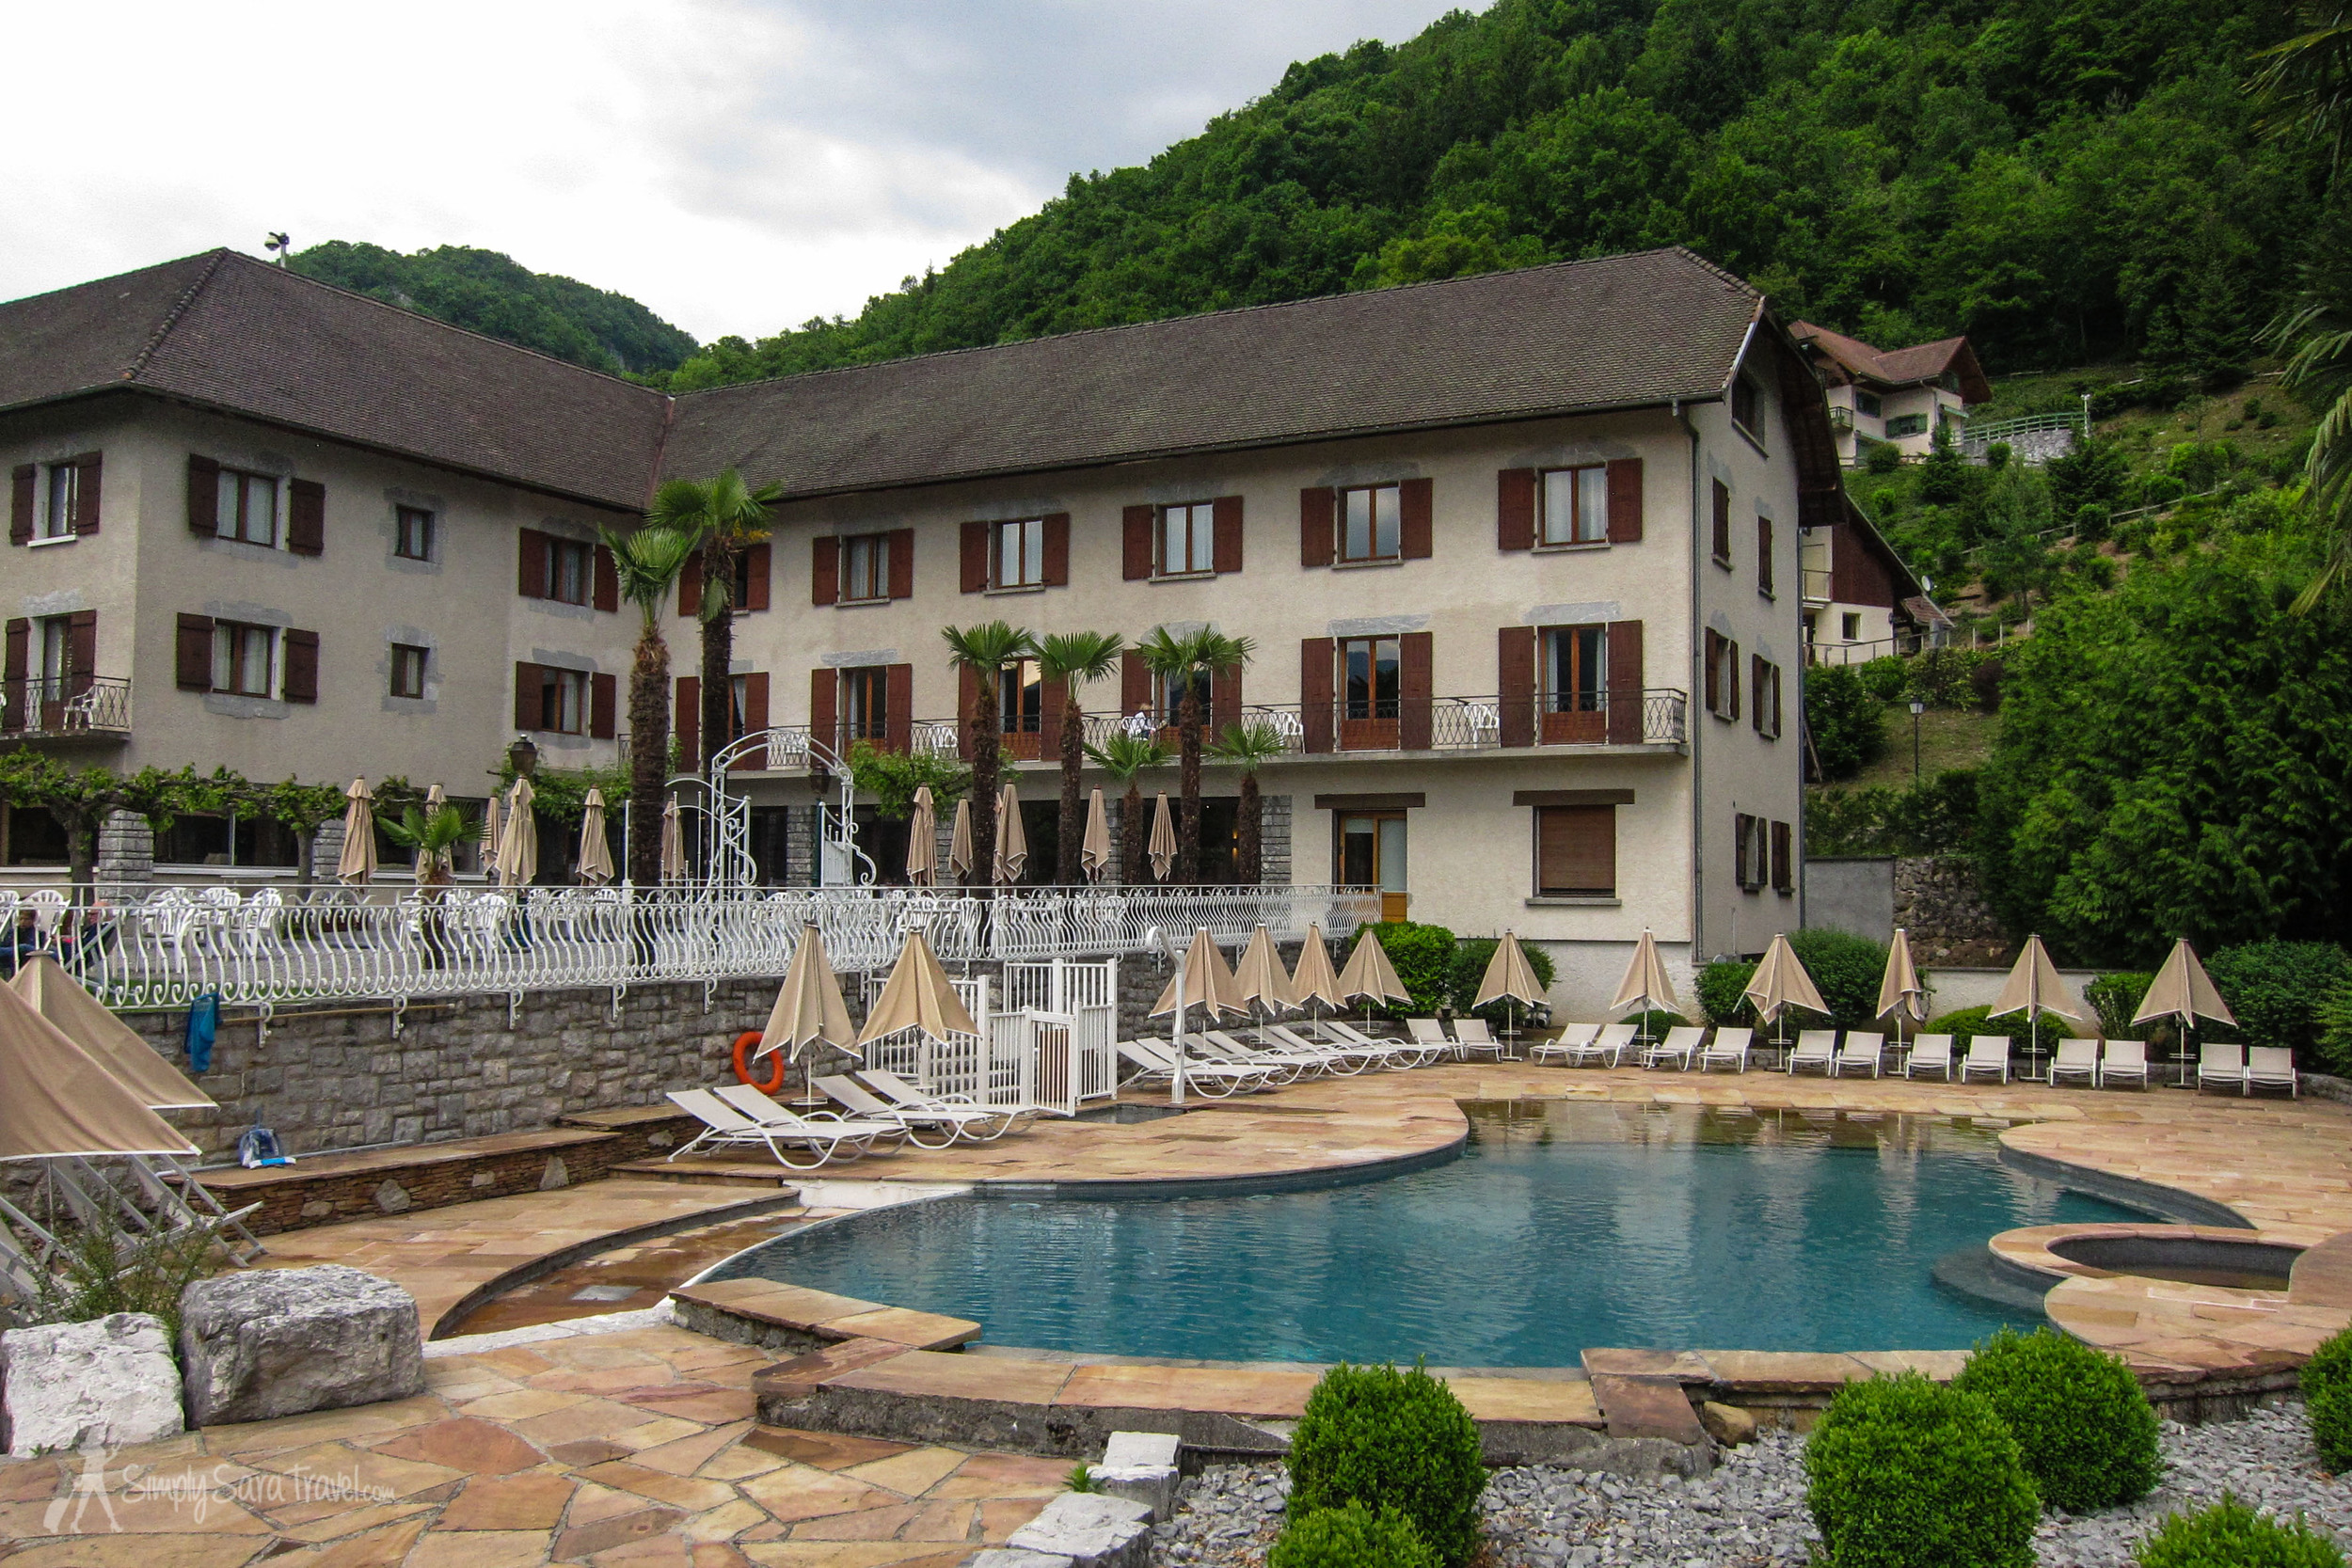 It was a little chilly to swim in May, but the pool area looked like it would be fun in the height of summer, surrounded by lush green mountains.